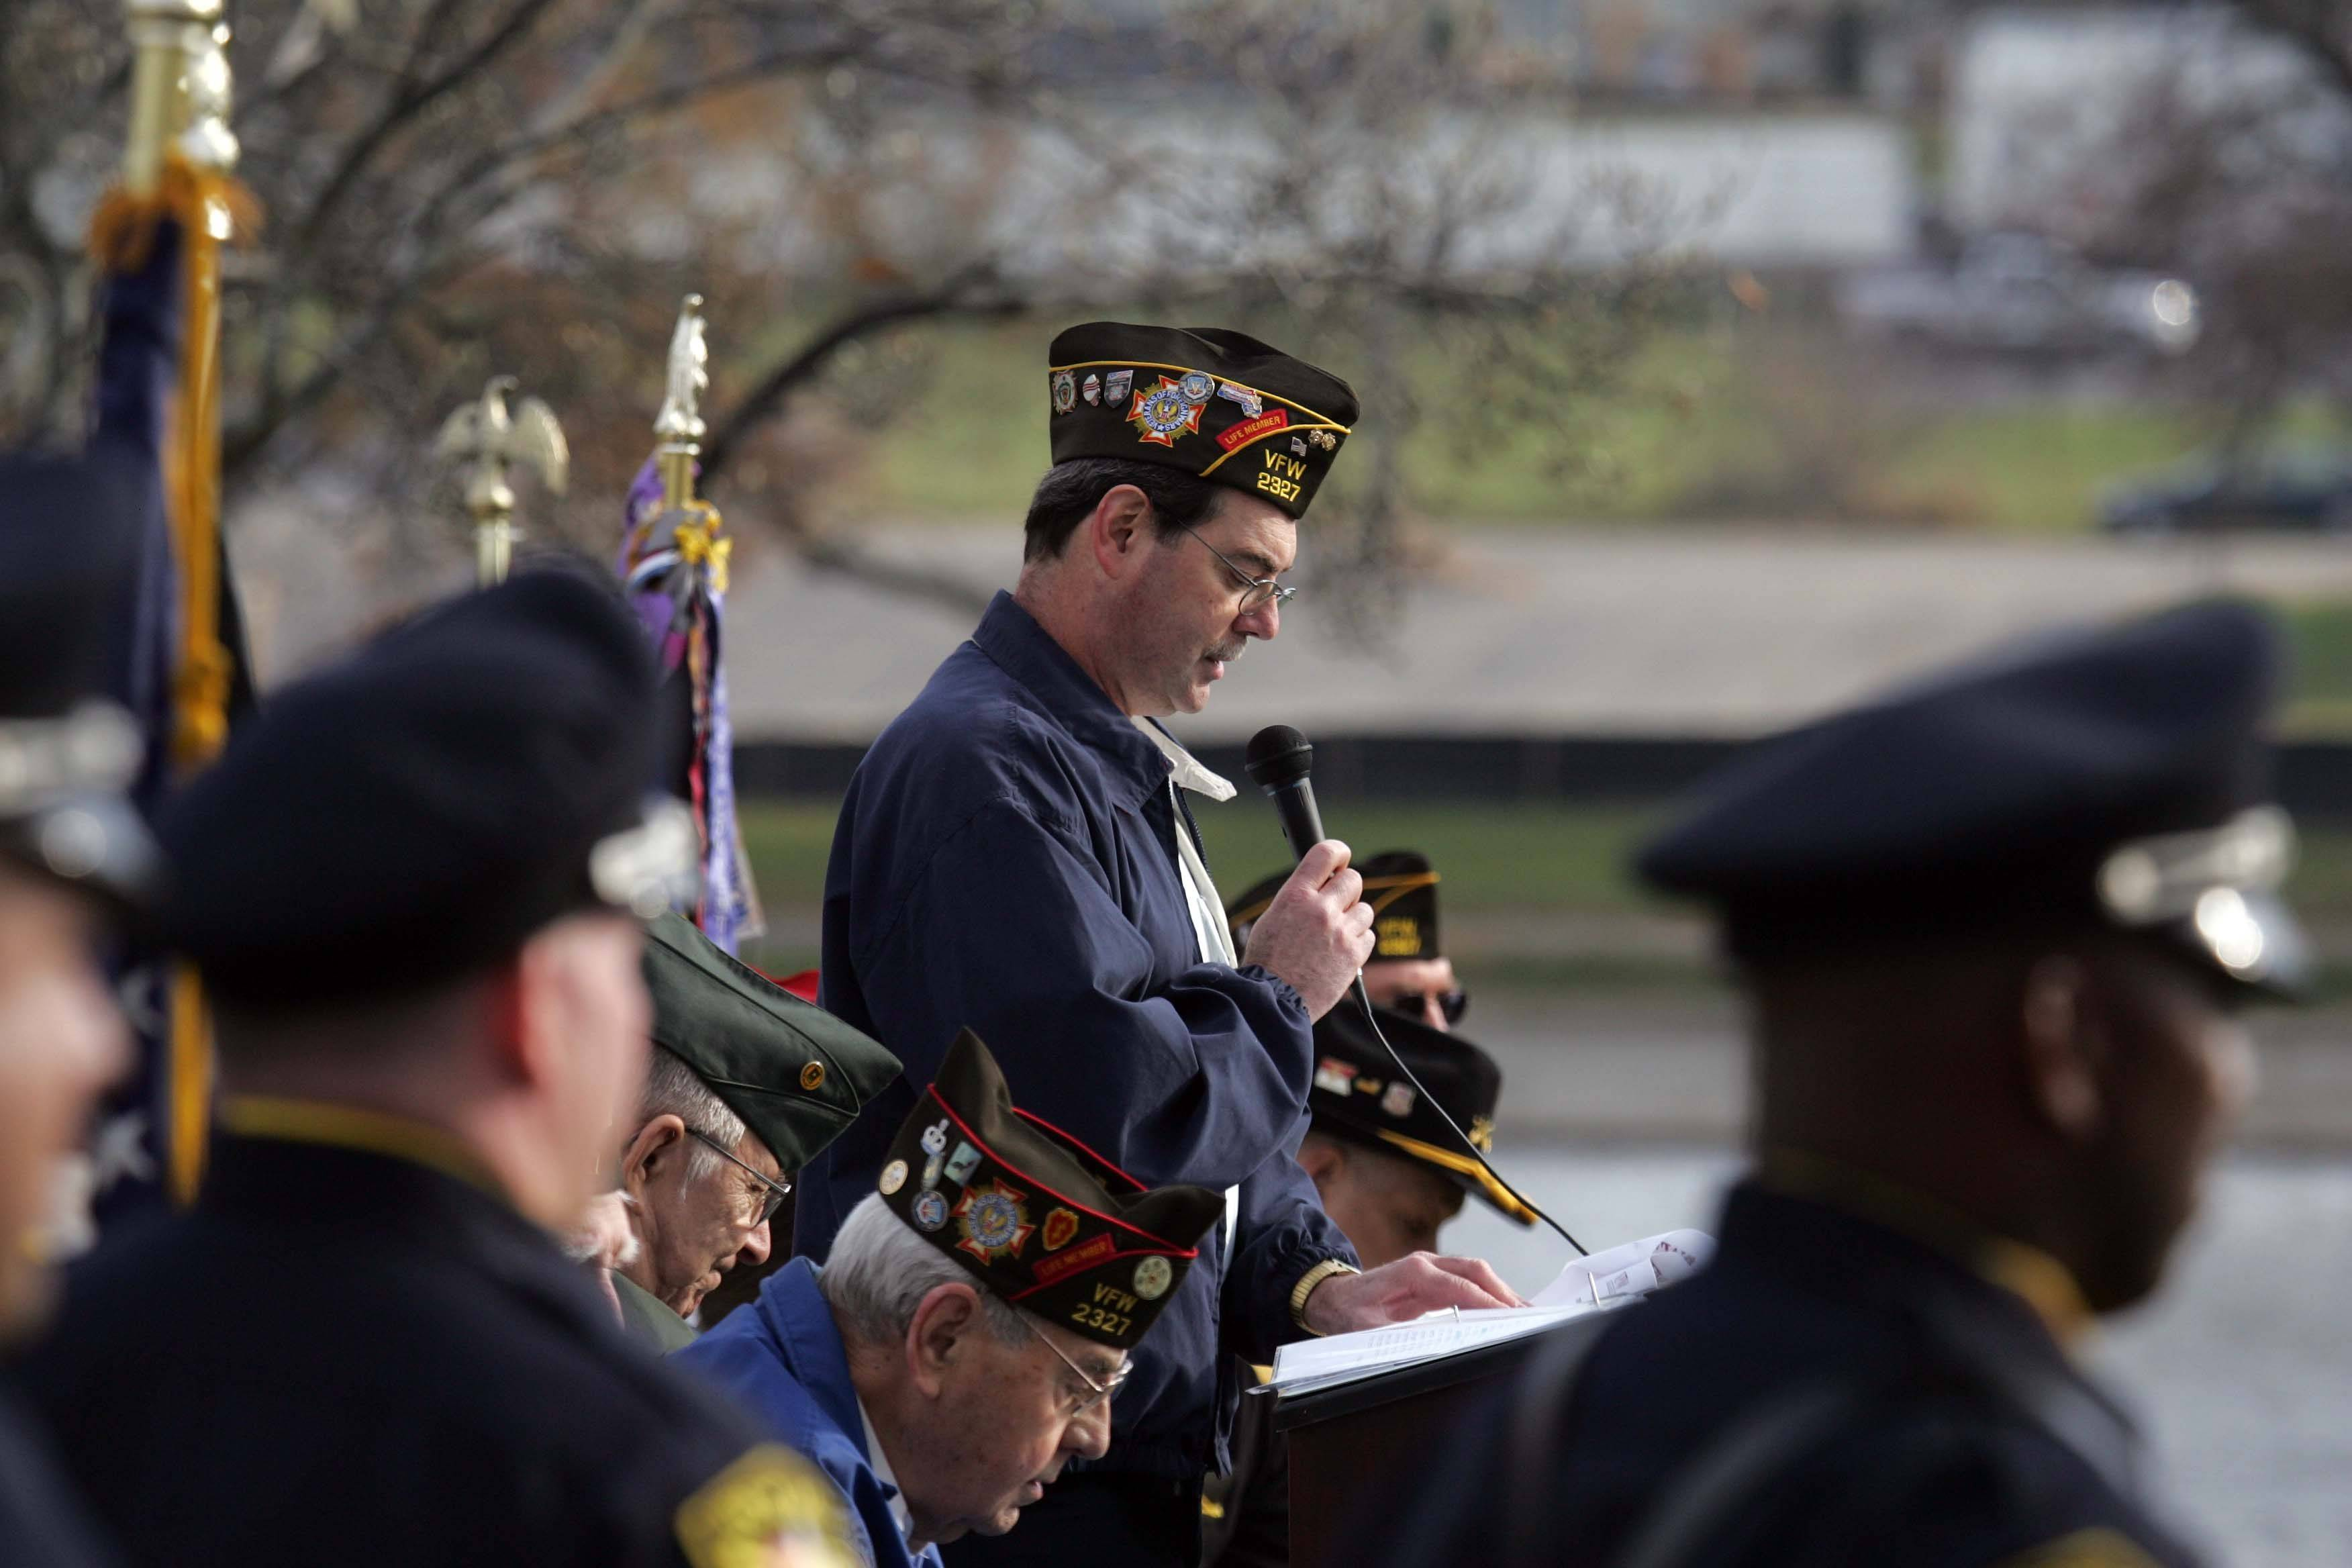 South Elgin VFH commander David Kozuch pauses during the Veterans Day service at Panton Mill Park in South Elgin Thursday.